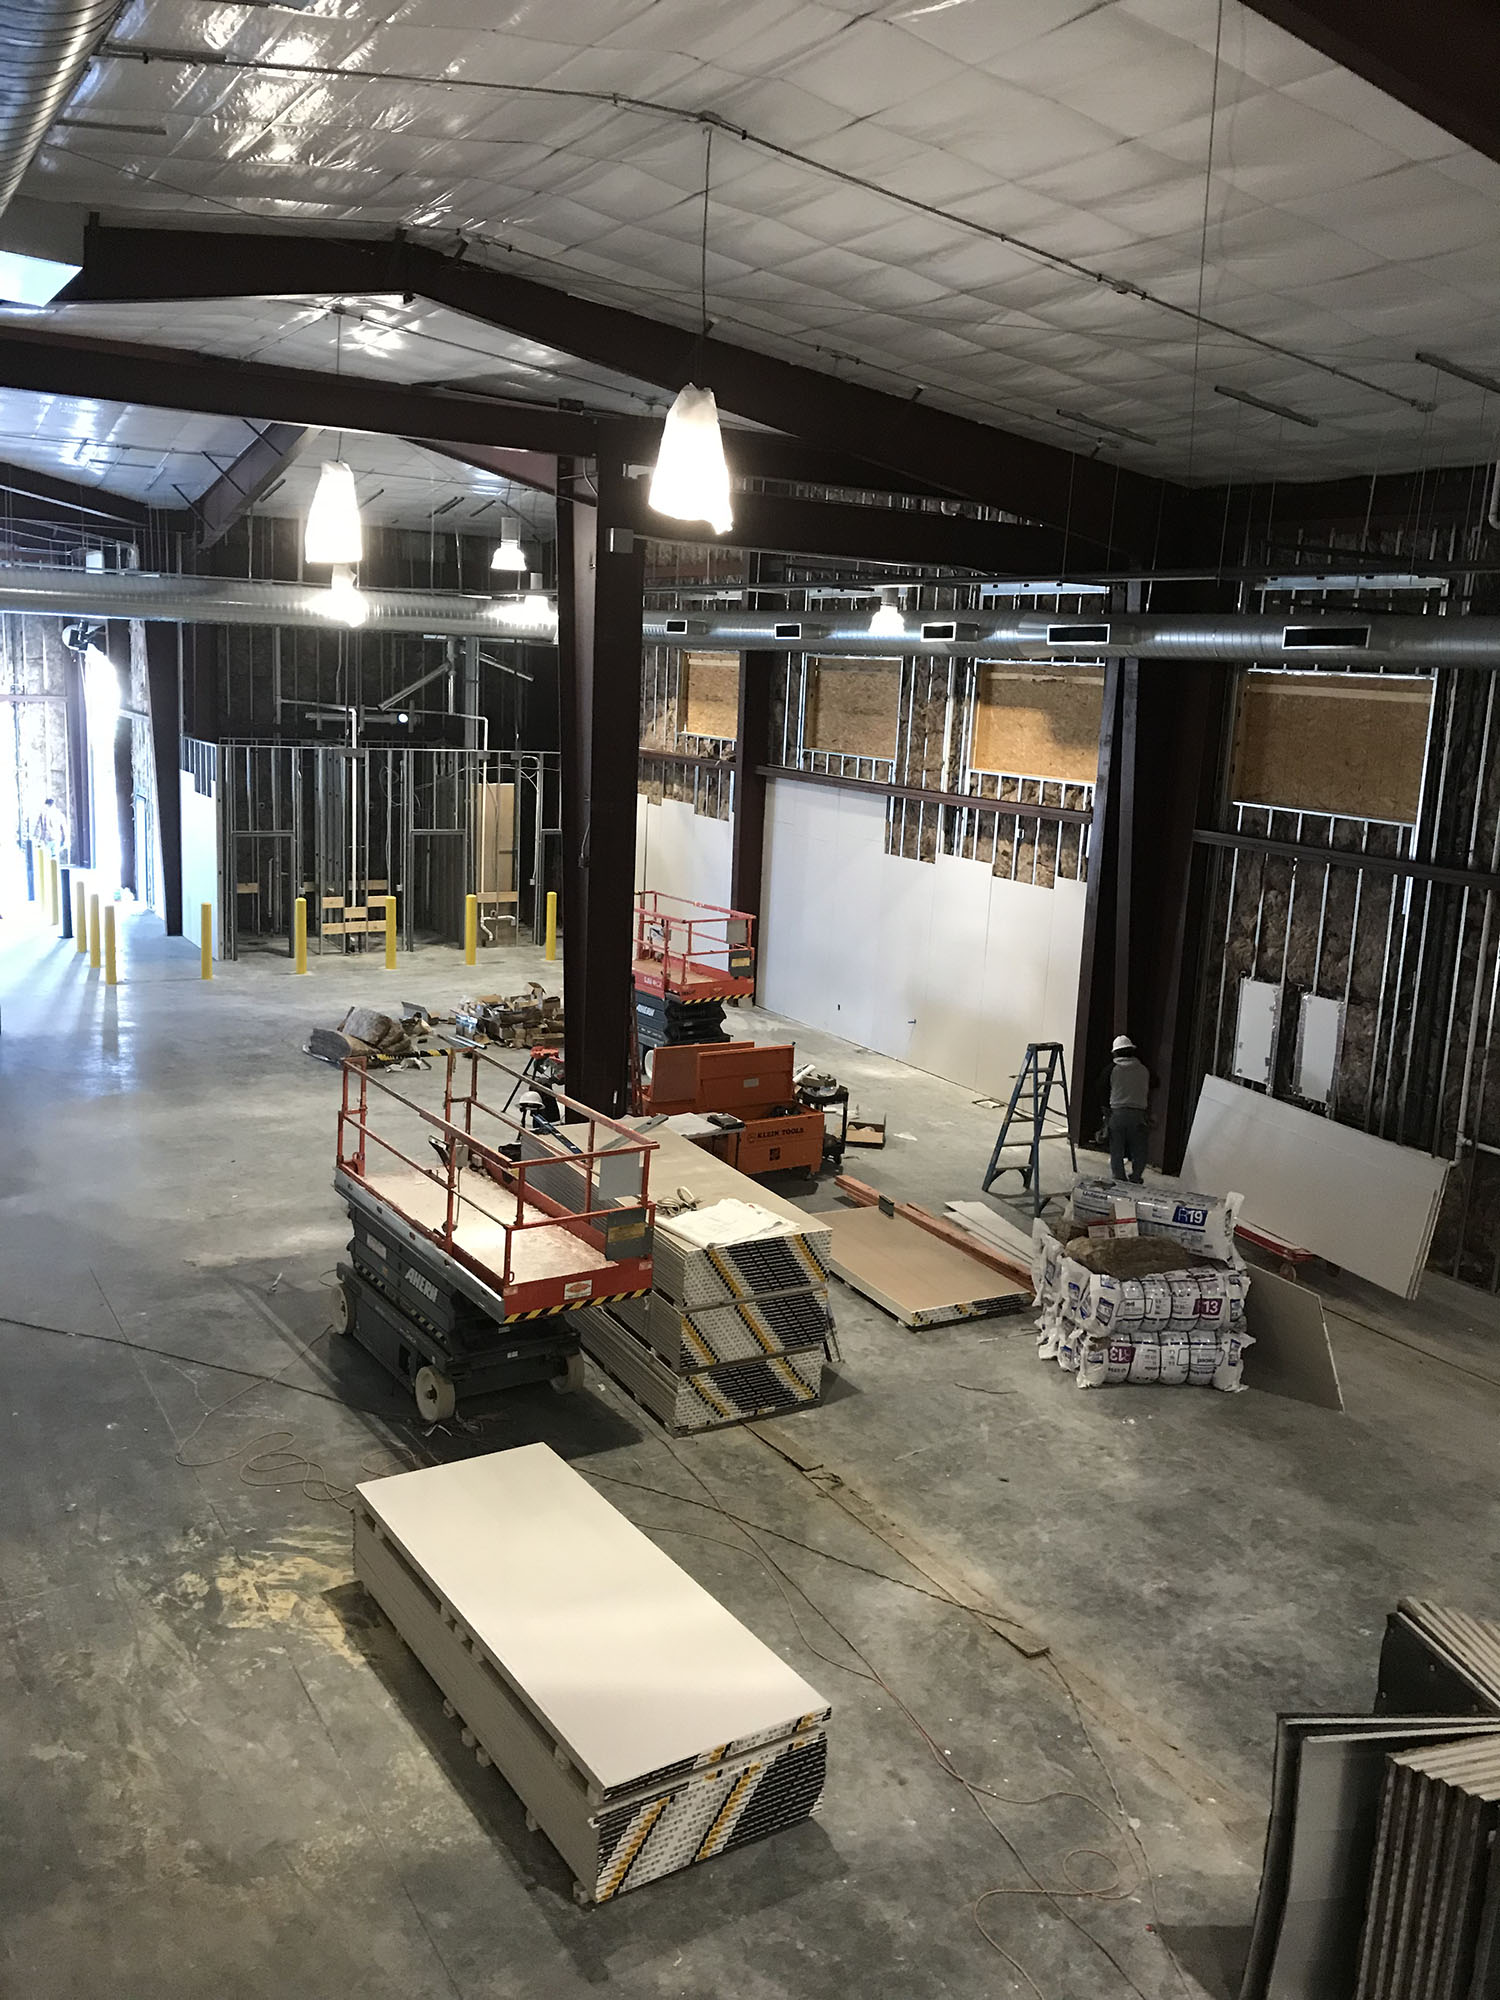 Deanan Gourmet Popcorn Expansion Progress